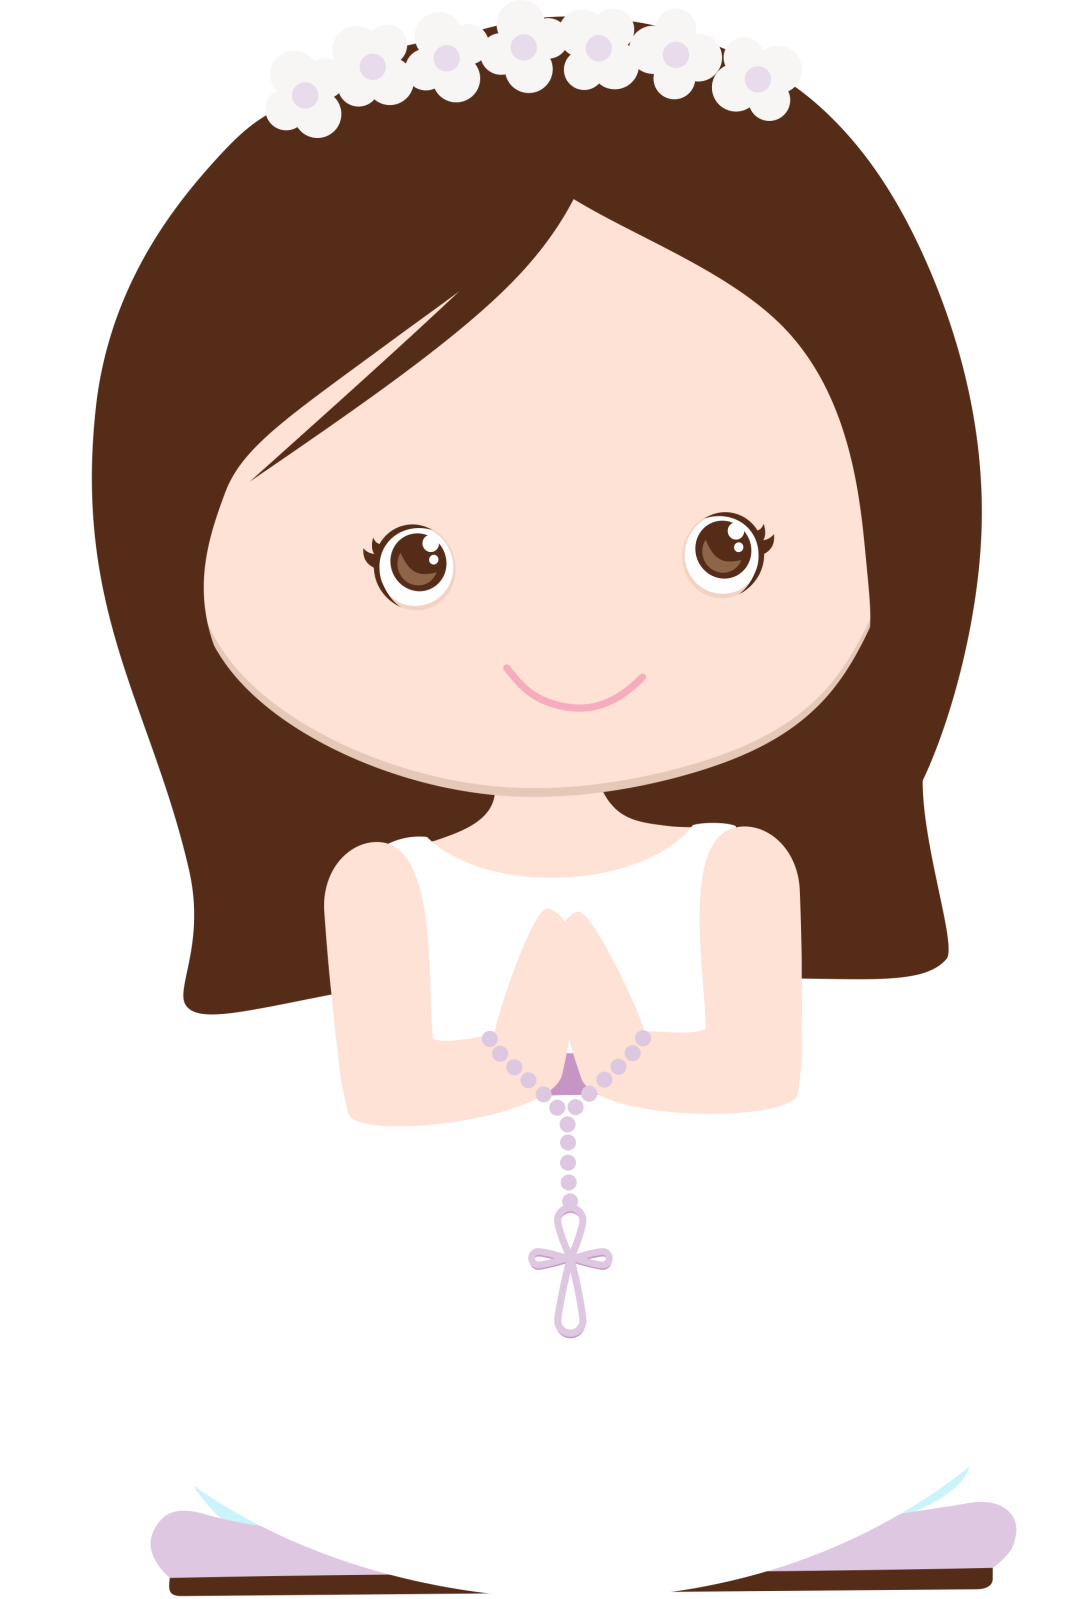 First communion girl png. Imagenes para confirmacion buscar